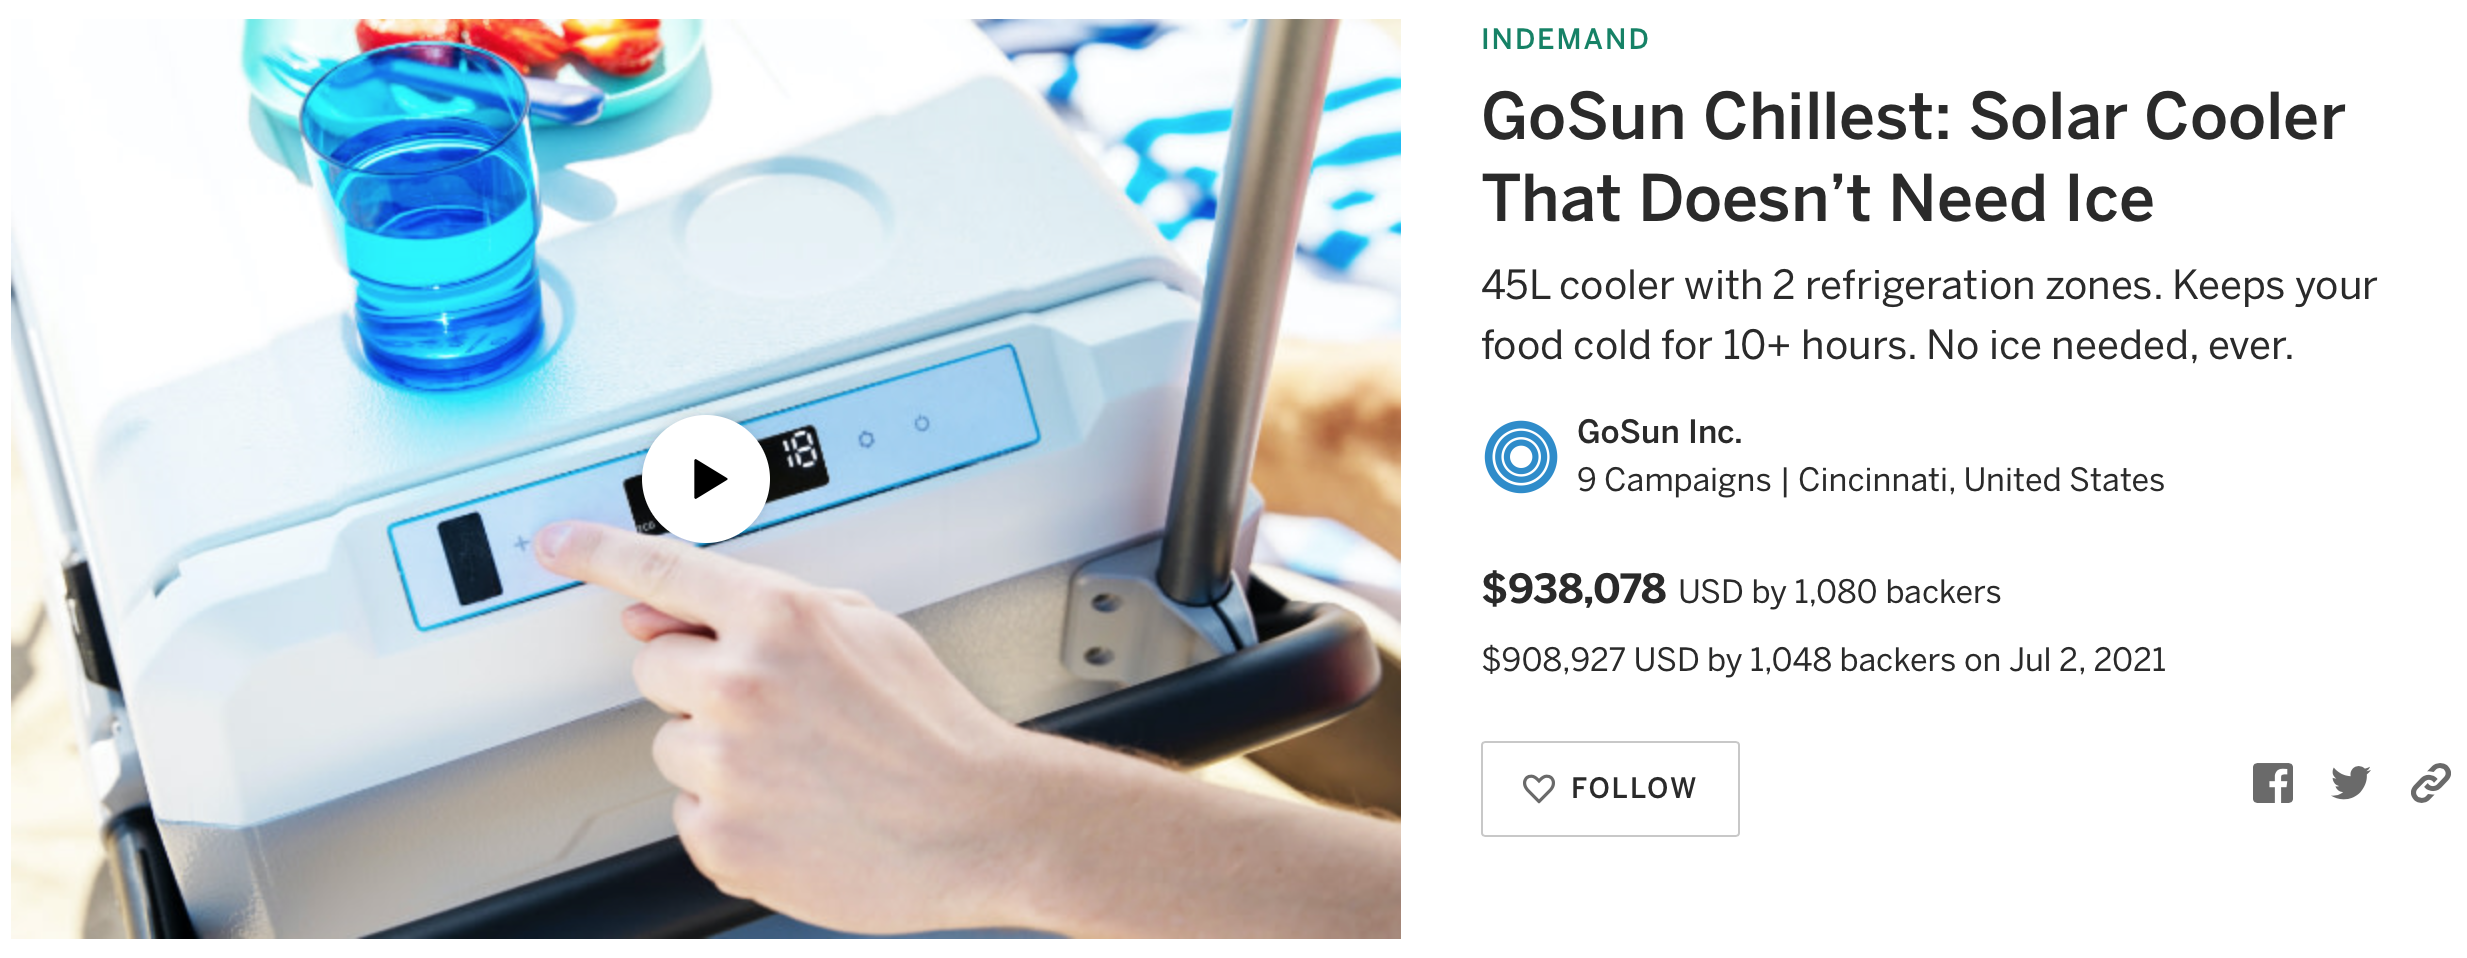 How we raised $938,078 for GoSun Chillest on Indiegogo [CASE STUDY]